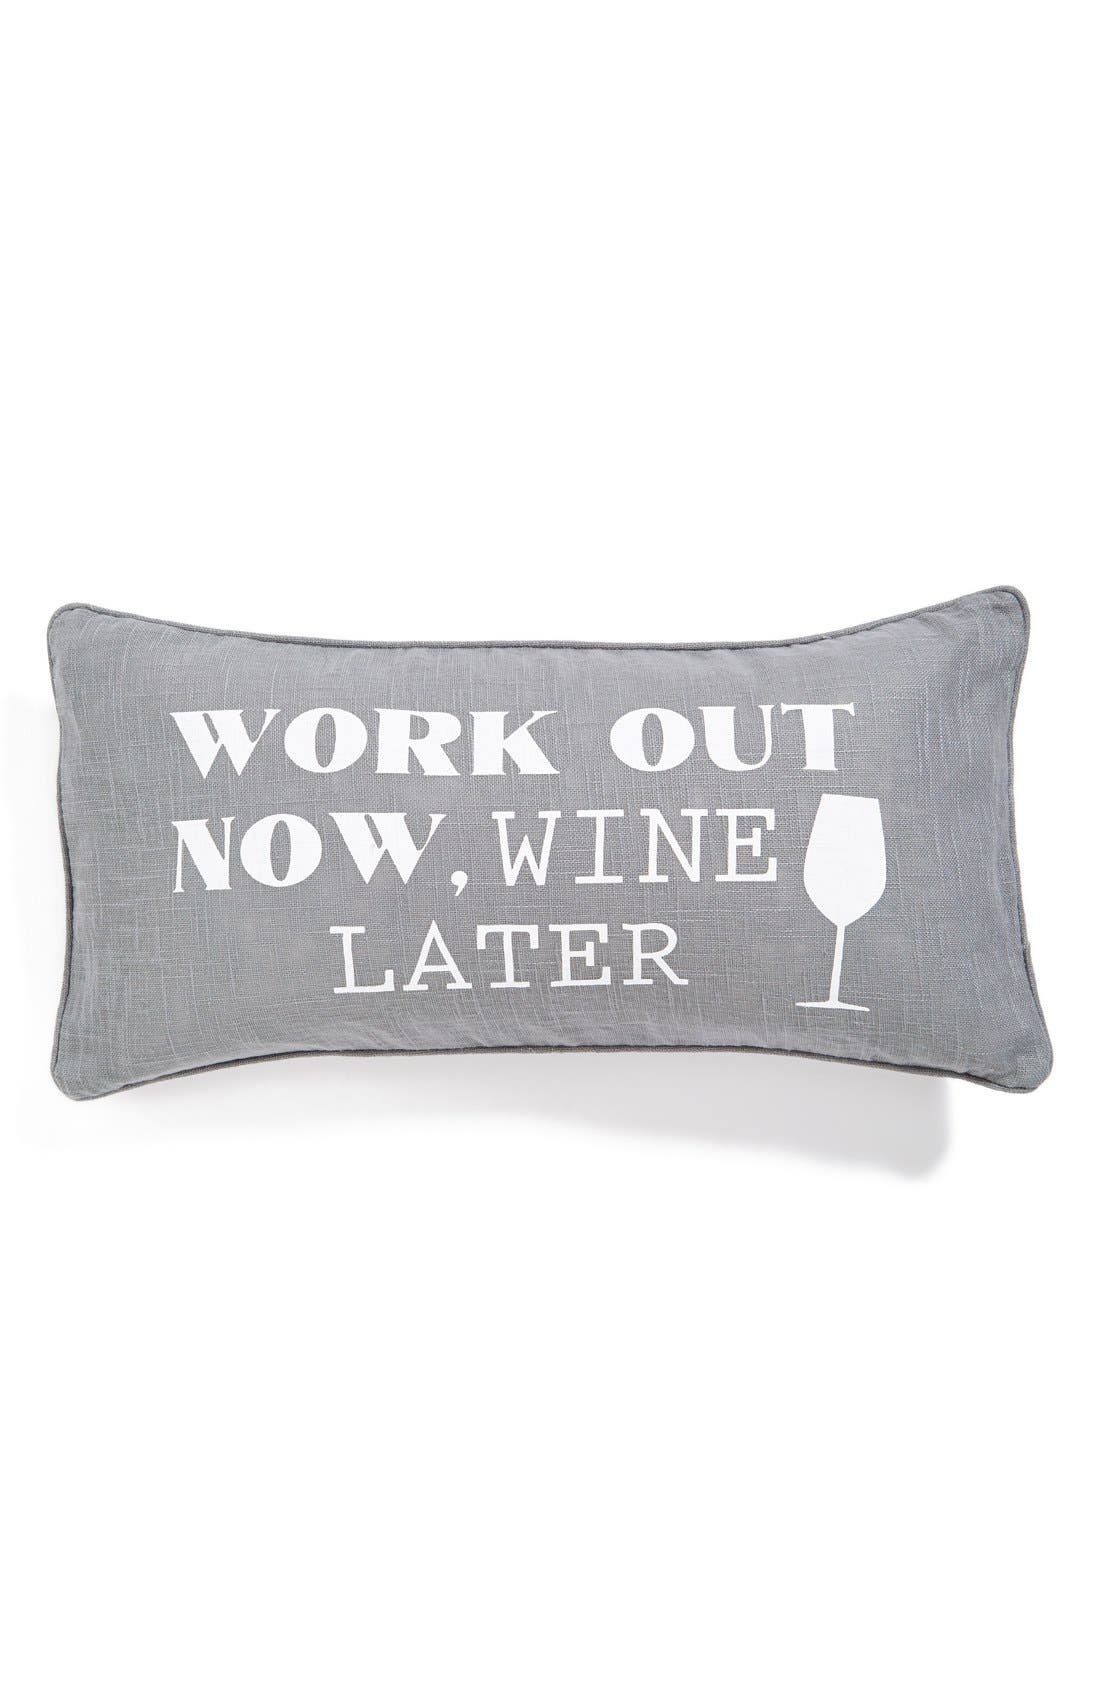 LEVTEX 'Work Out Now, Wine Later' Accent Pillow, Main, color, 020